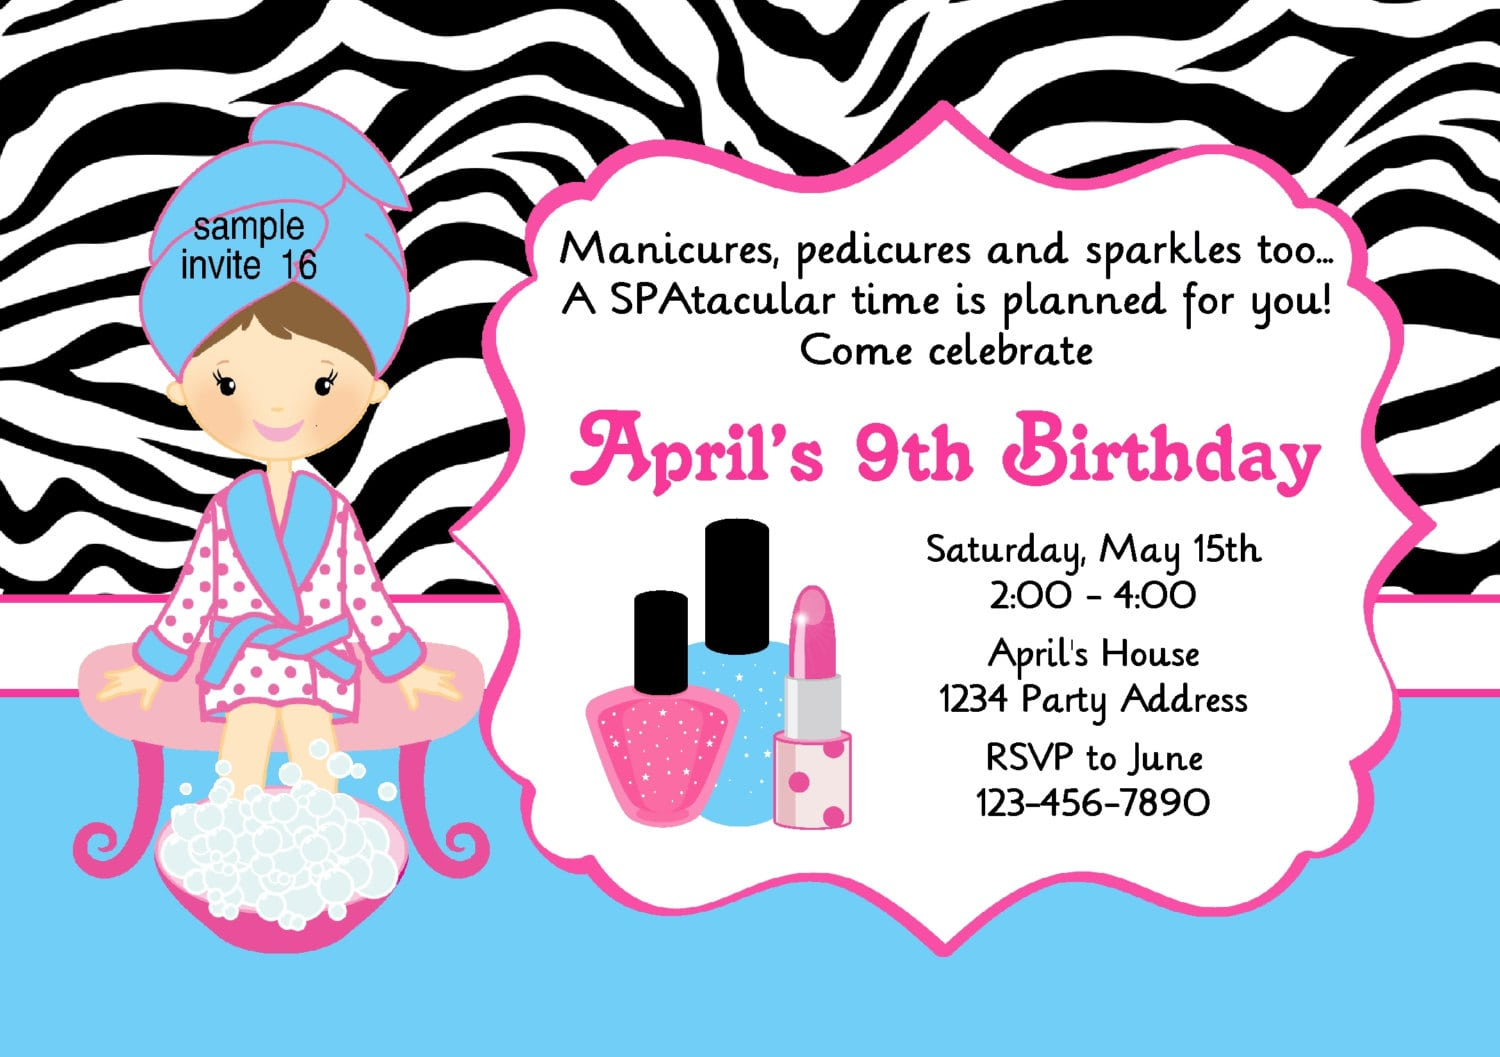 Spa Party Invitation Manicure Pedicure Makeup Birthday Party